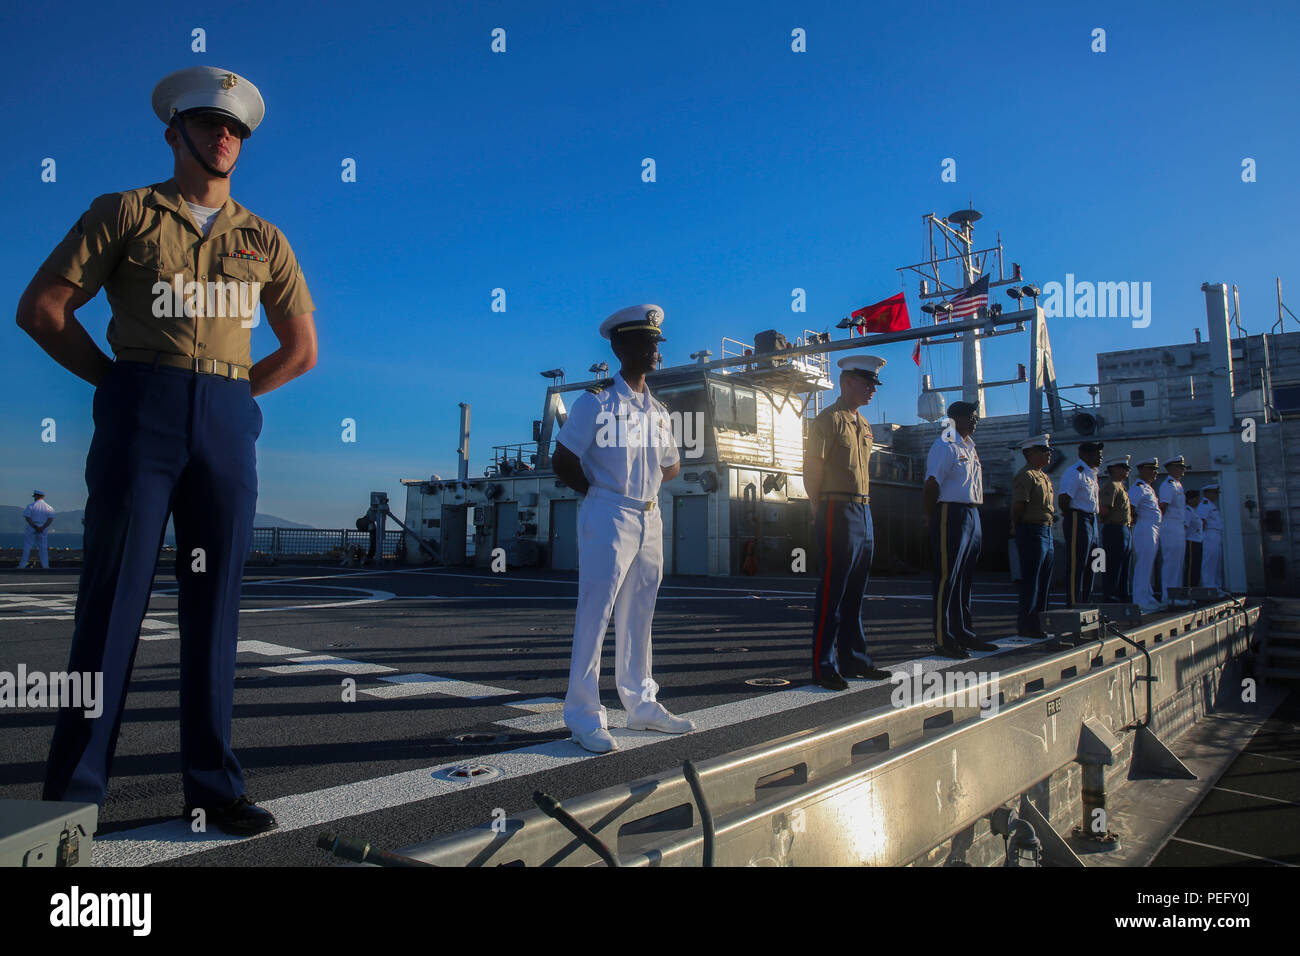 150817-M-GO800-098 DA NANG, Vietnam (August 17, 2015) – Service members with Pacific Partnership 2015 man the rails aboard the Military Sealift Command joint high speed vessel USNS Millinocket (JHSV 3)  Aug. 17 as the ship arrives in Vietnam. Task Force Forager, embarked aboard Millinocket is serving as the secondary platform for Pacific Partnership, led by an expeditionary command element from the Navy's 30th Naval Construction Regiment (30 NCR) from Port Hueneme, California. Now in its 10th iteration, Pacific Partnership is the largest annual multilateral humanitarian assistance and disaster - Stock Image